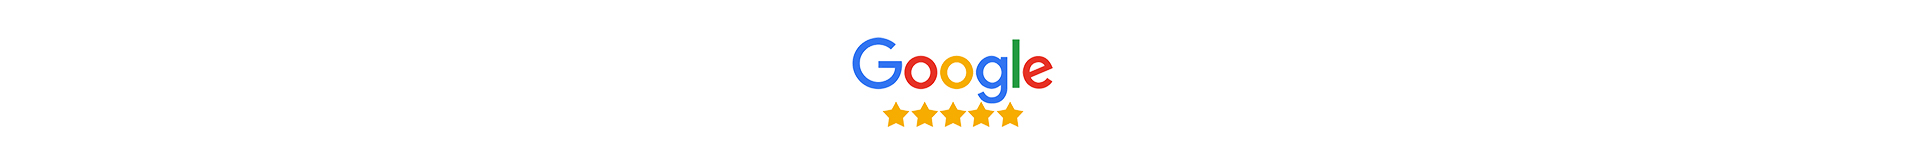 Google Review Auto Strijder